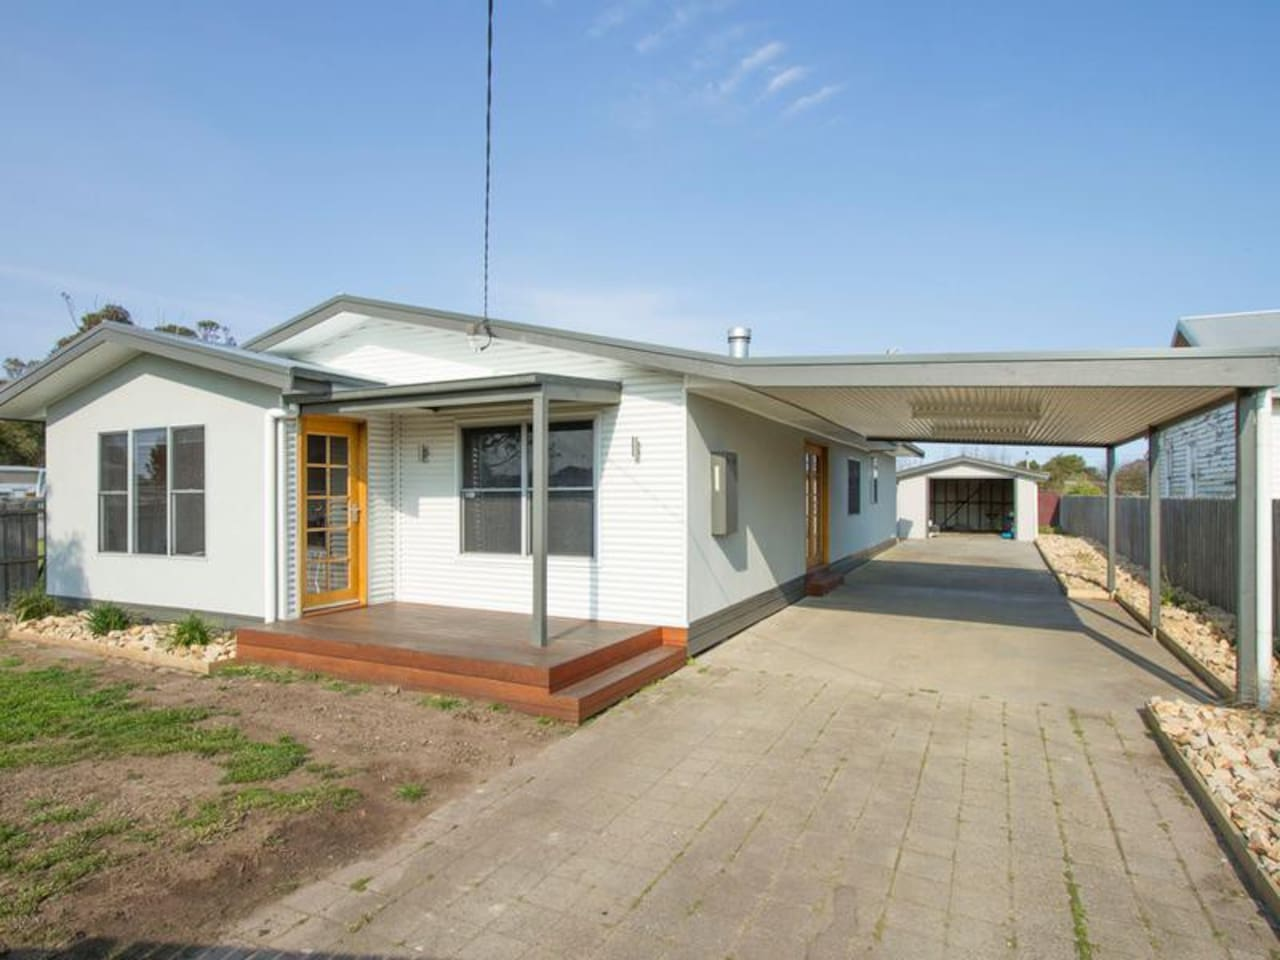 FRONT OF HOUSE AND CARPORT